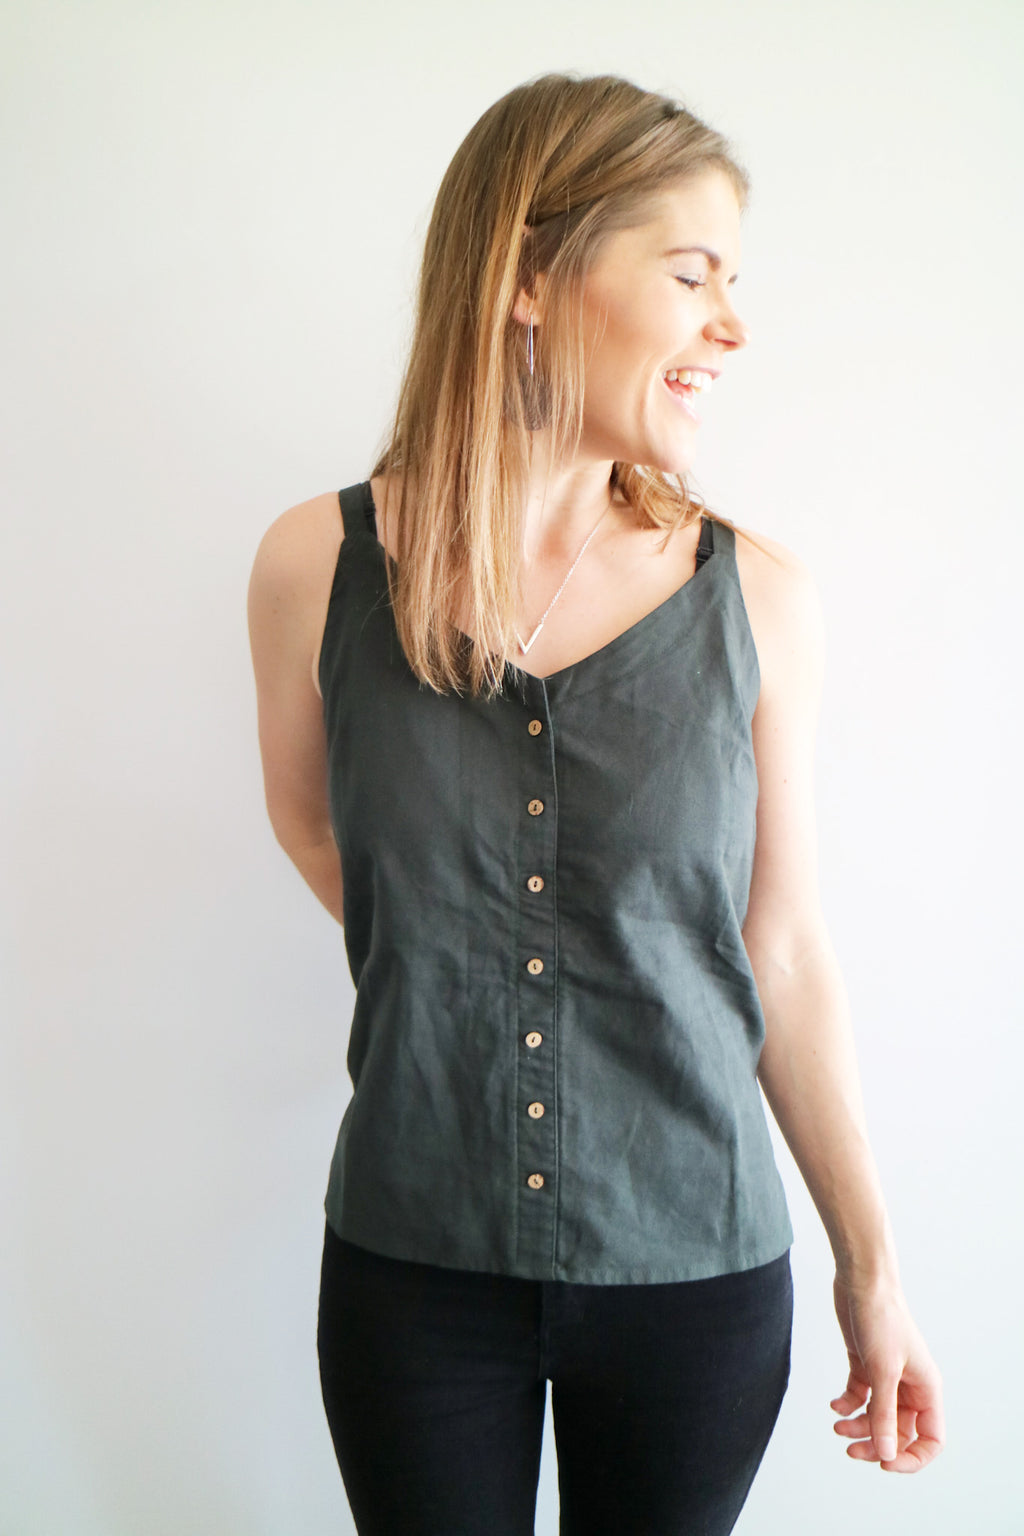 breastfeeding-top-cami-nzdesigned